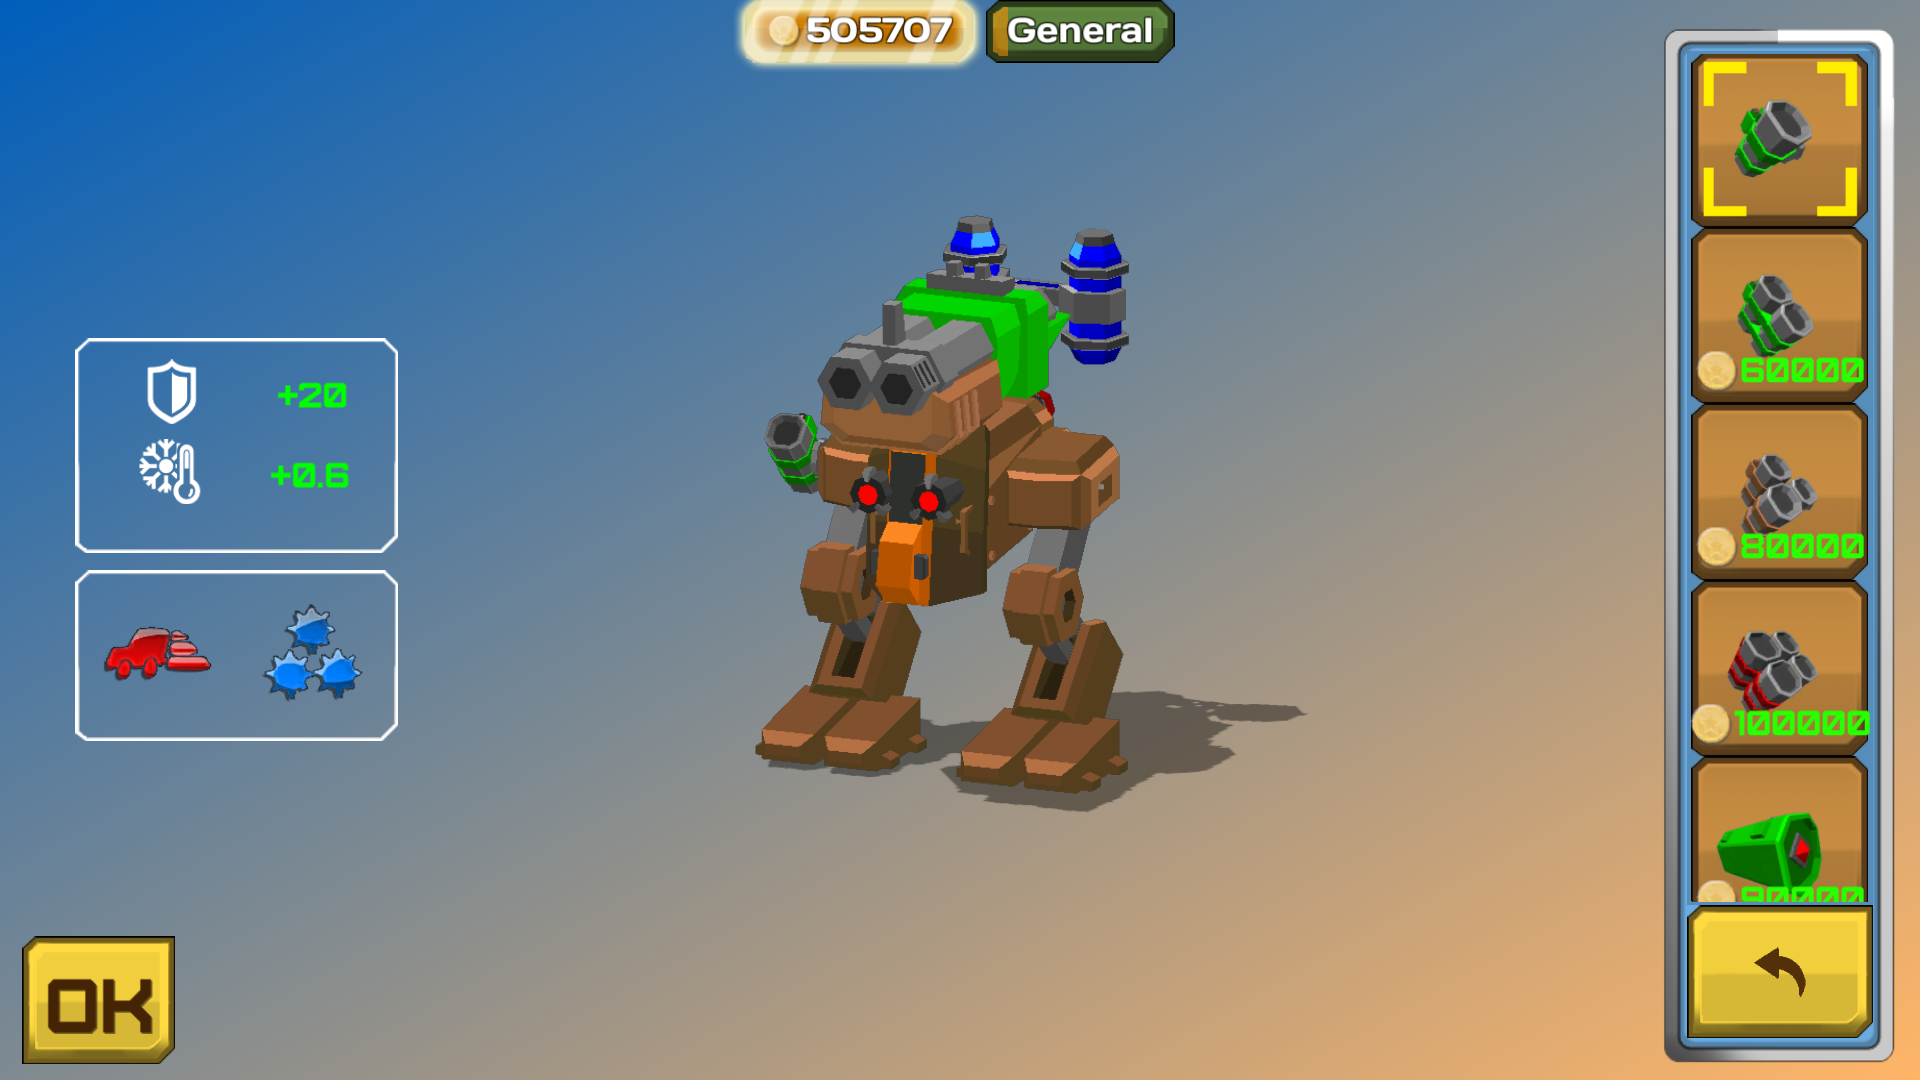 Bipedal mech with frontal armor